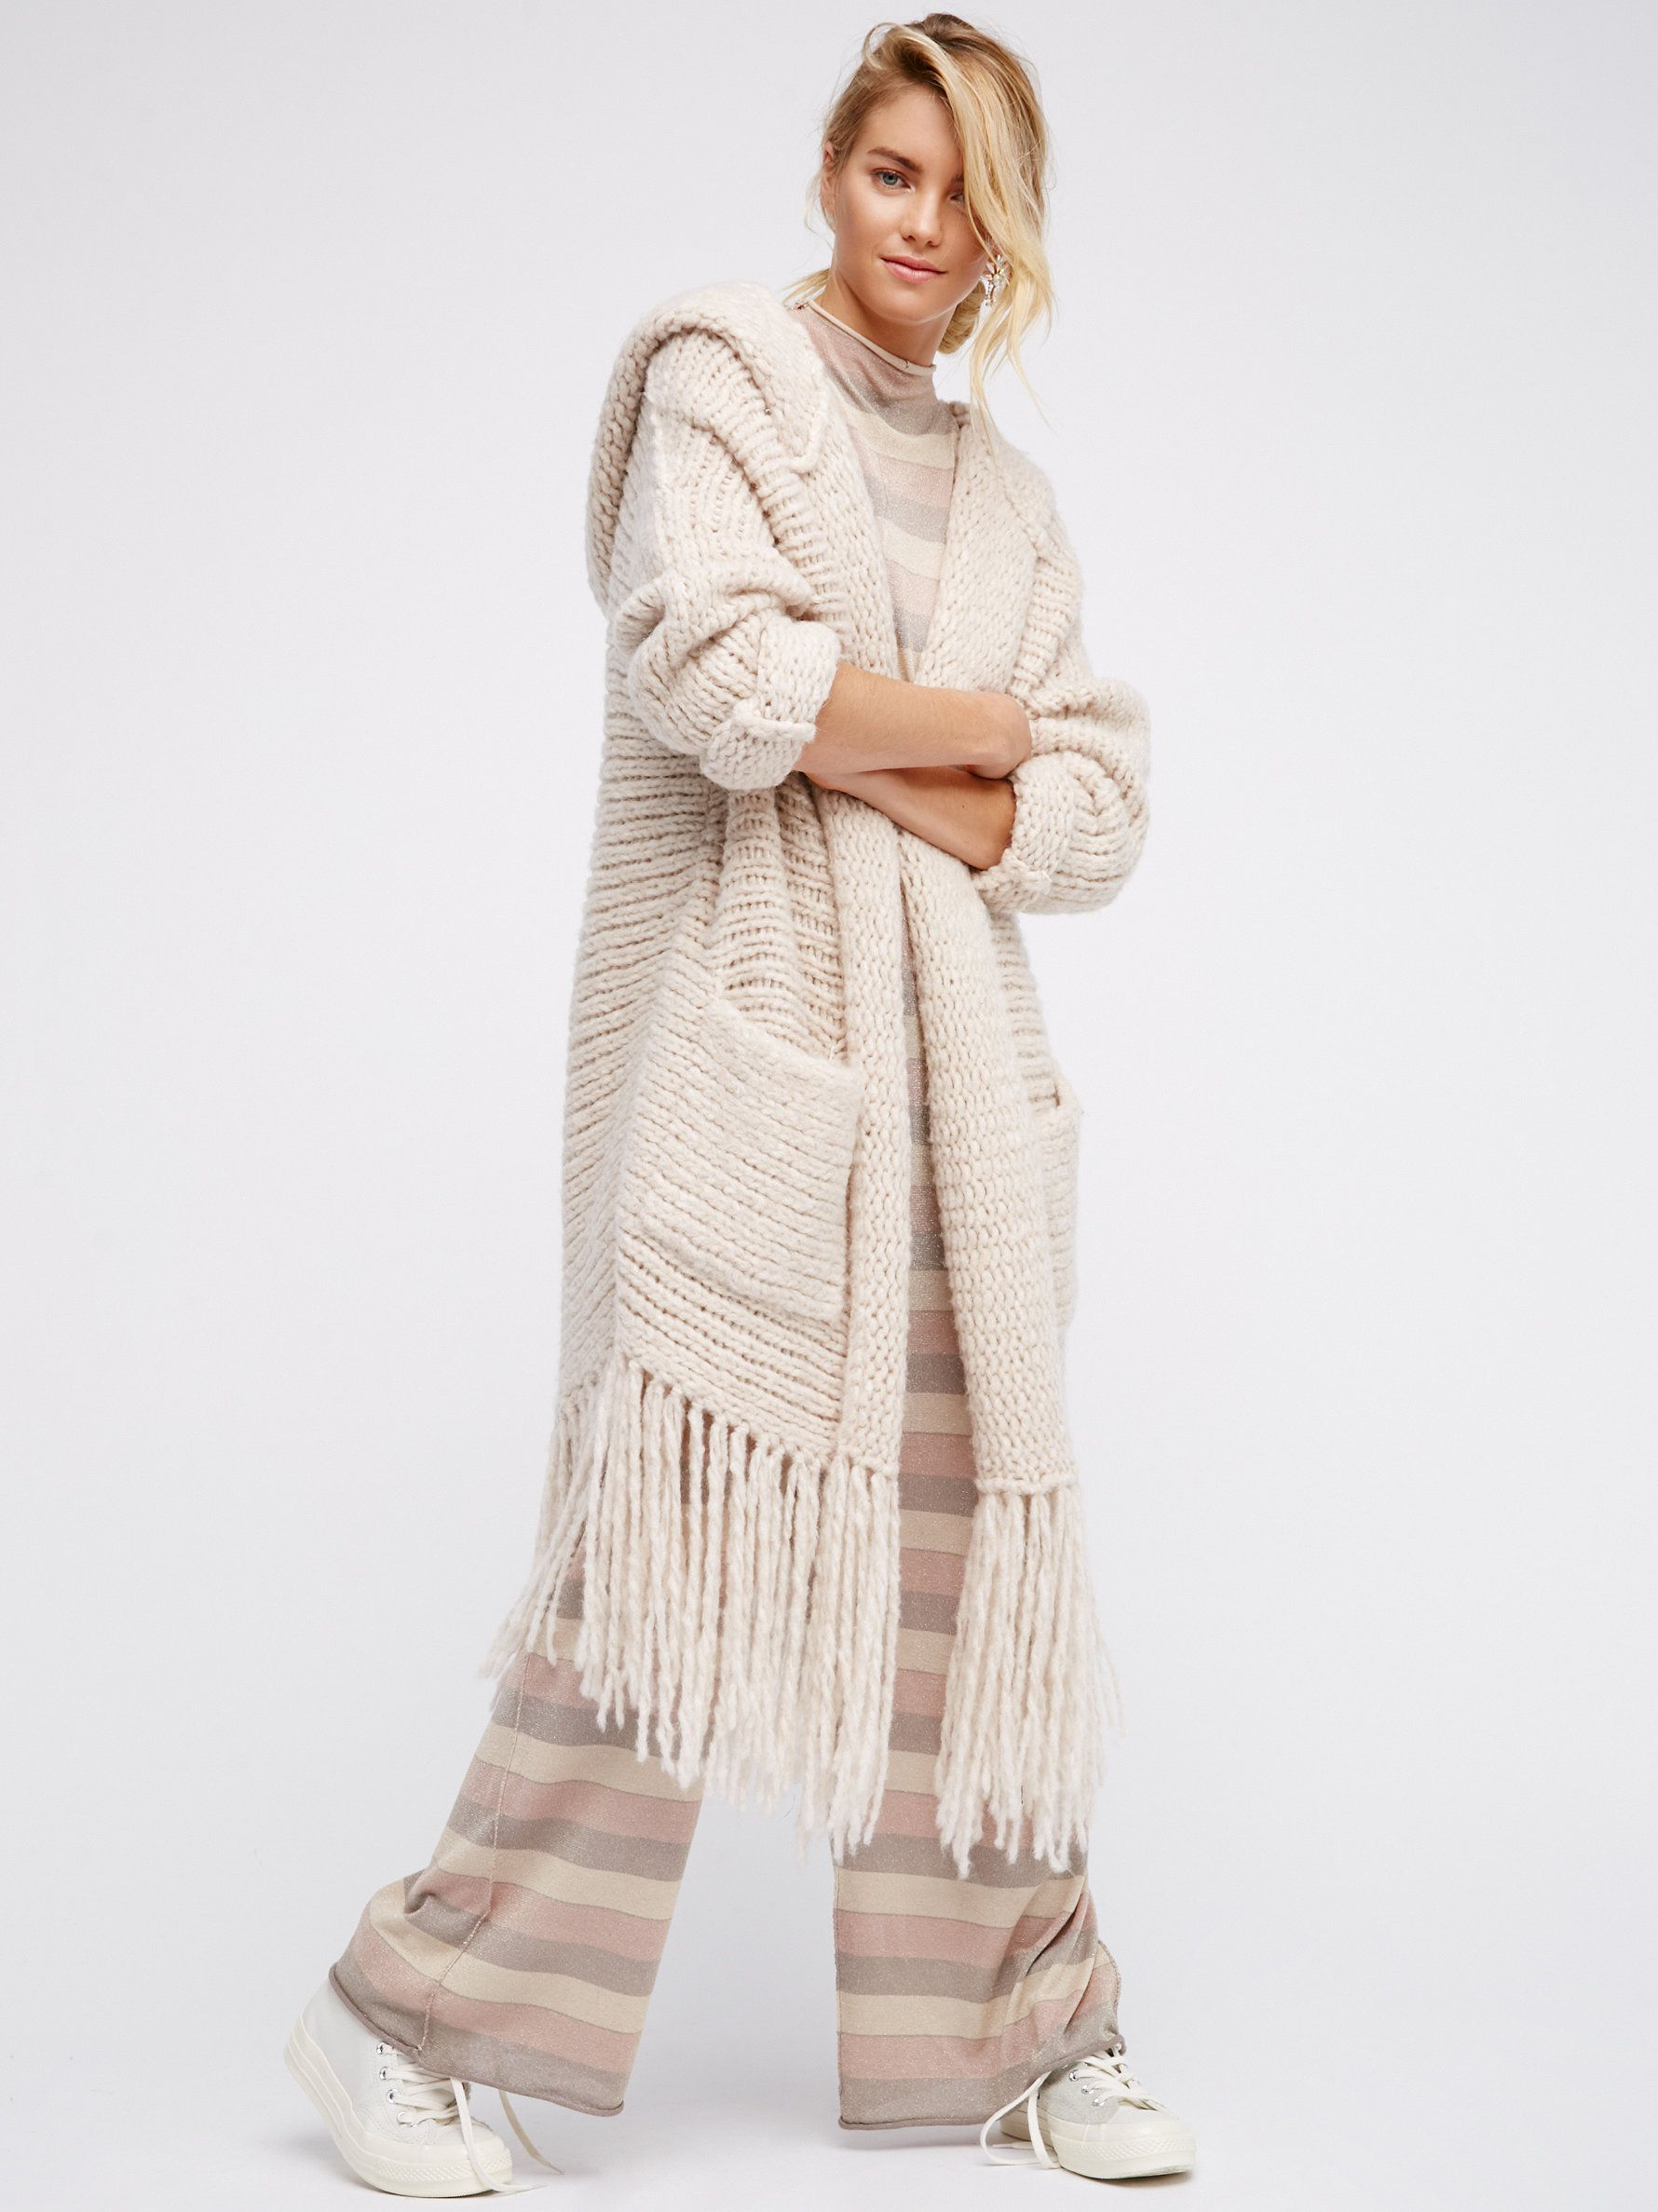 Set Me Free Cardi | Super cozy and soft chunky cardigan sweater ...